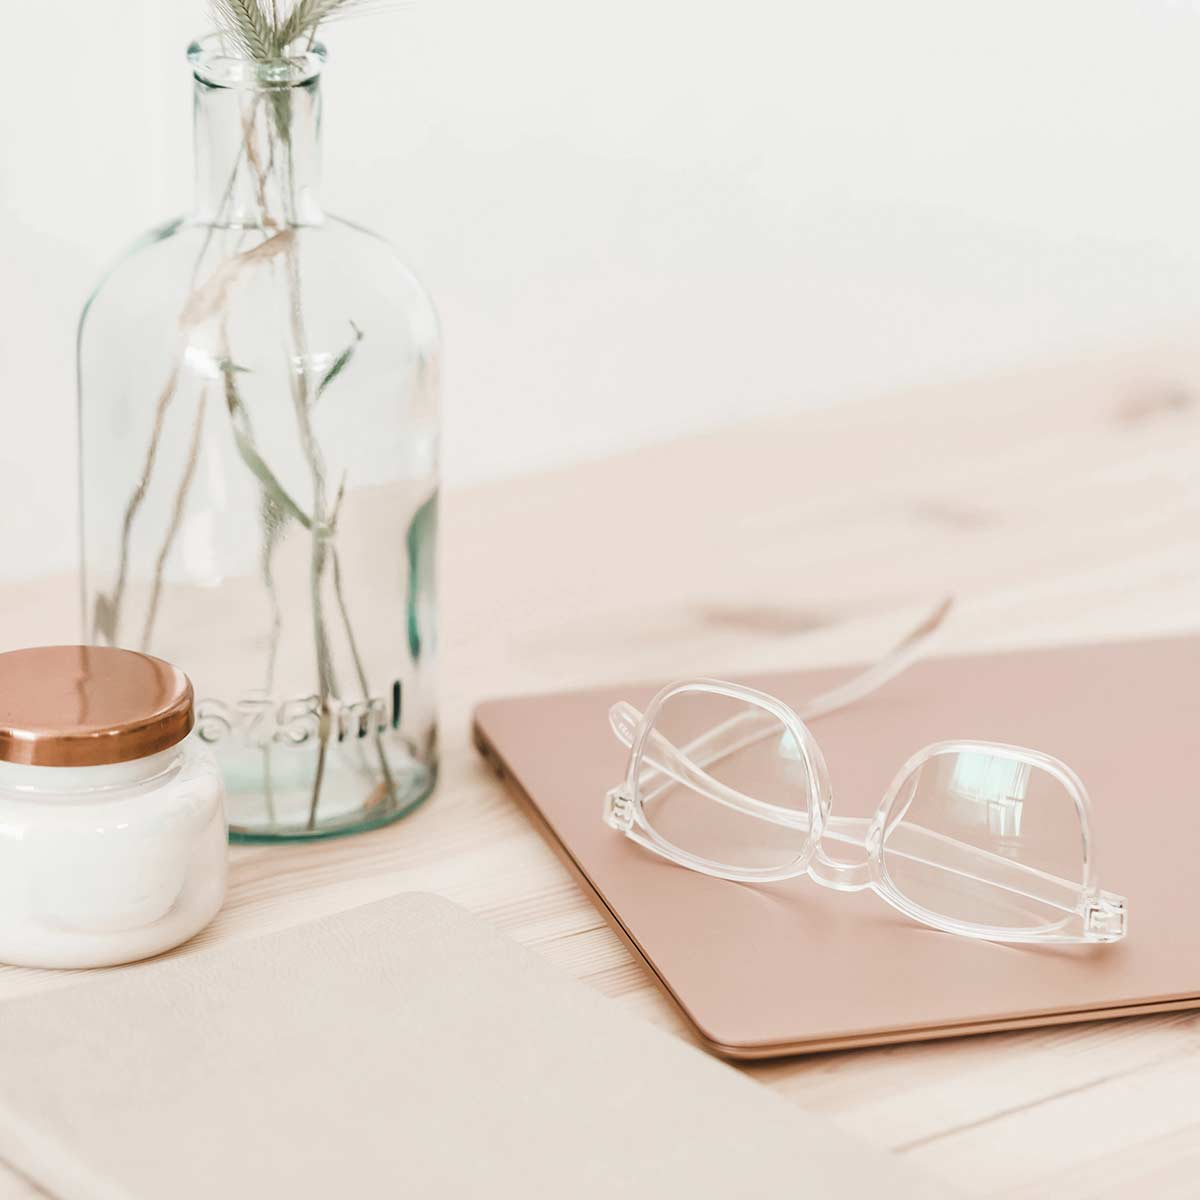 glasses, laptop, journal, glass jars on wood table